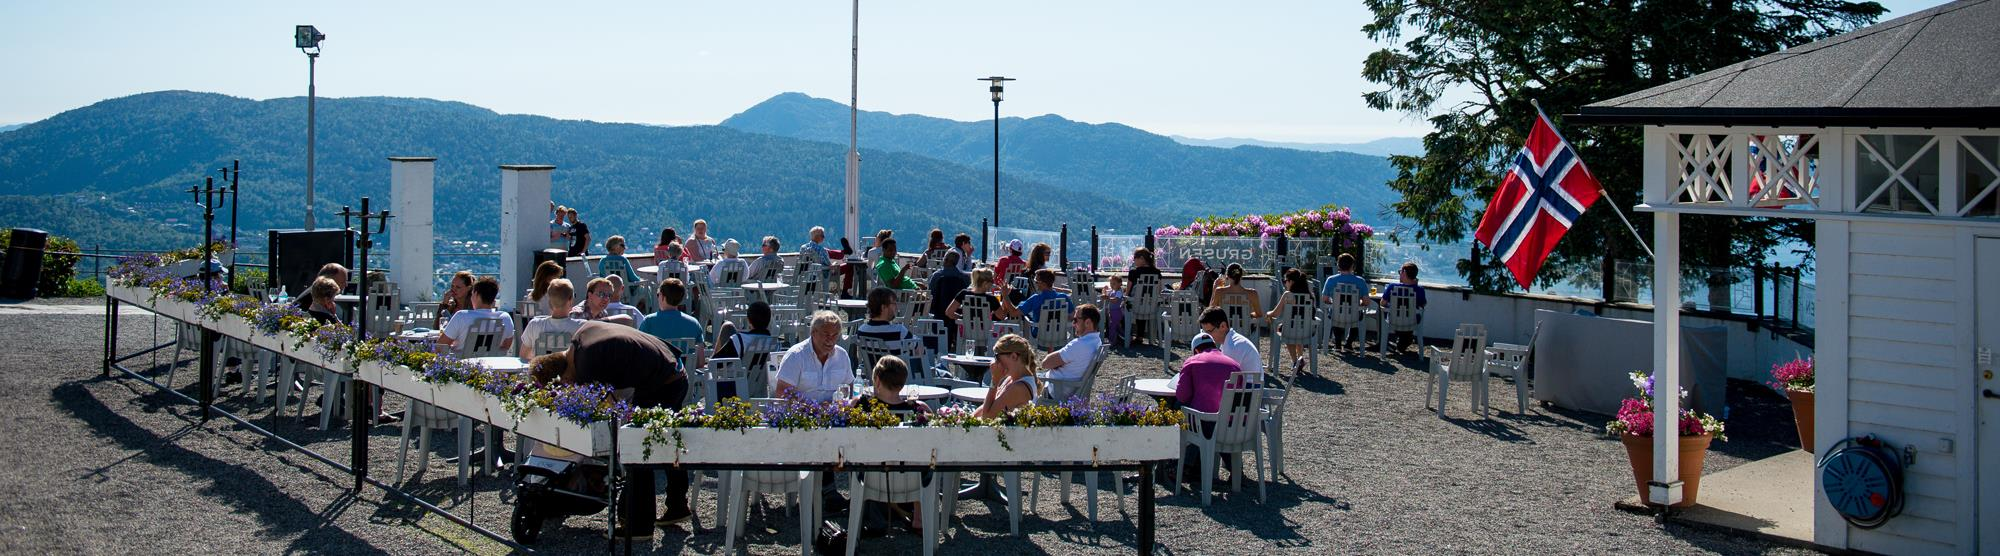 Enjoy local cuisine and a panoramic view of Bergen at Mount Fløyen.